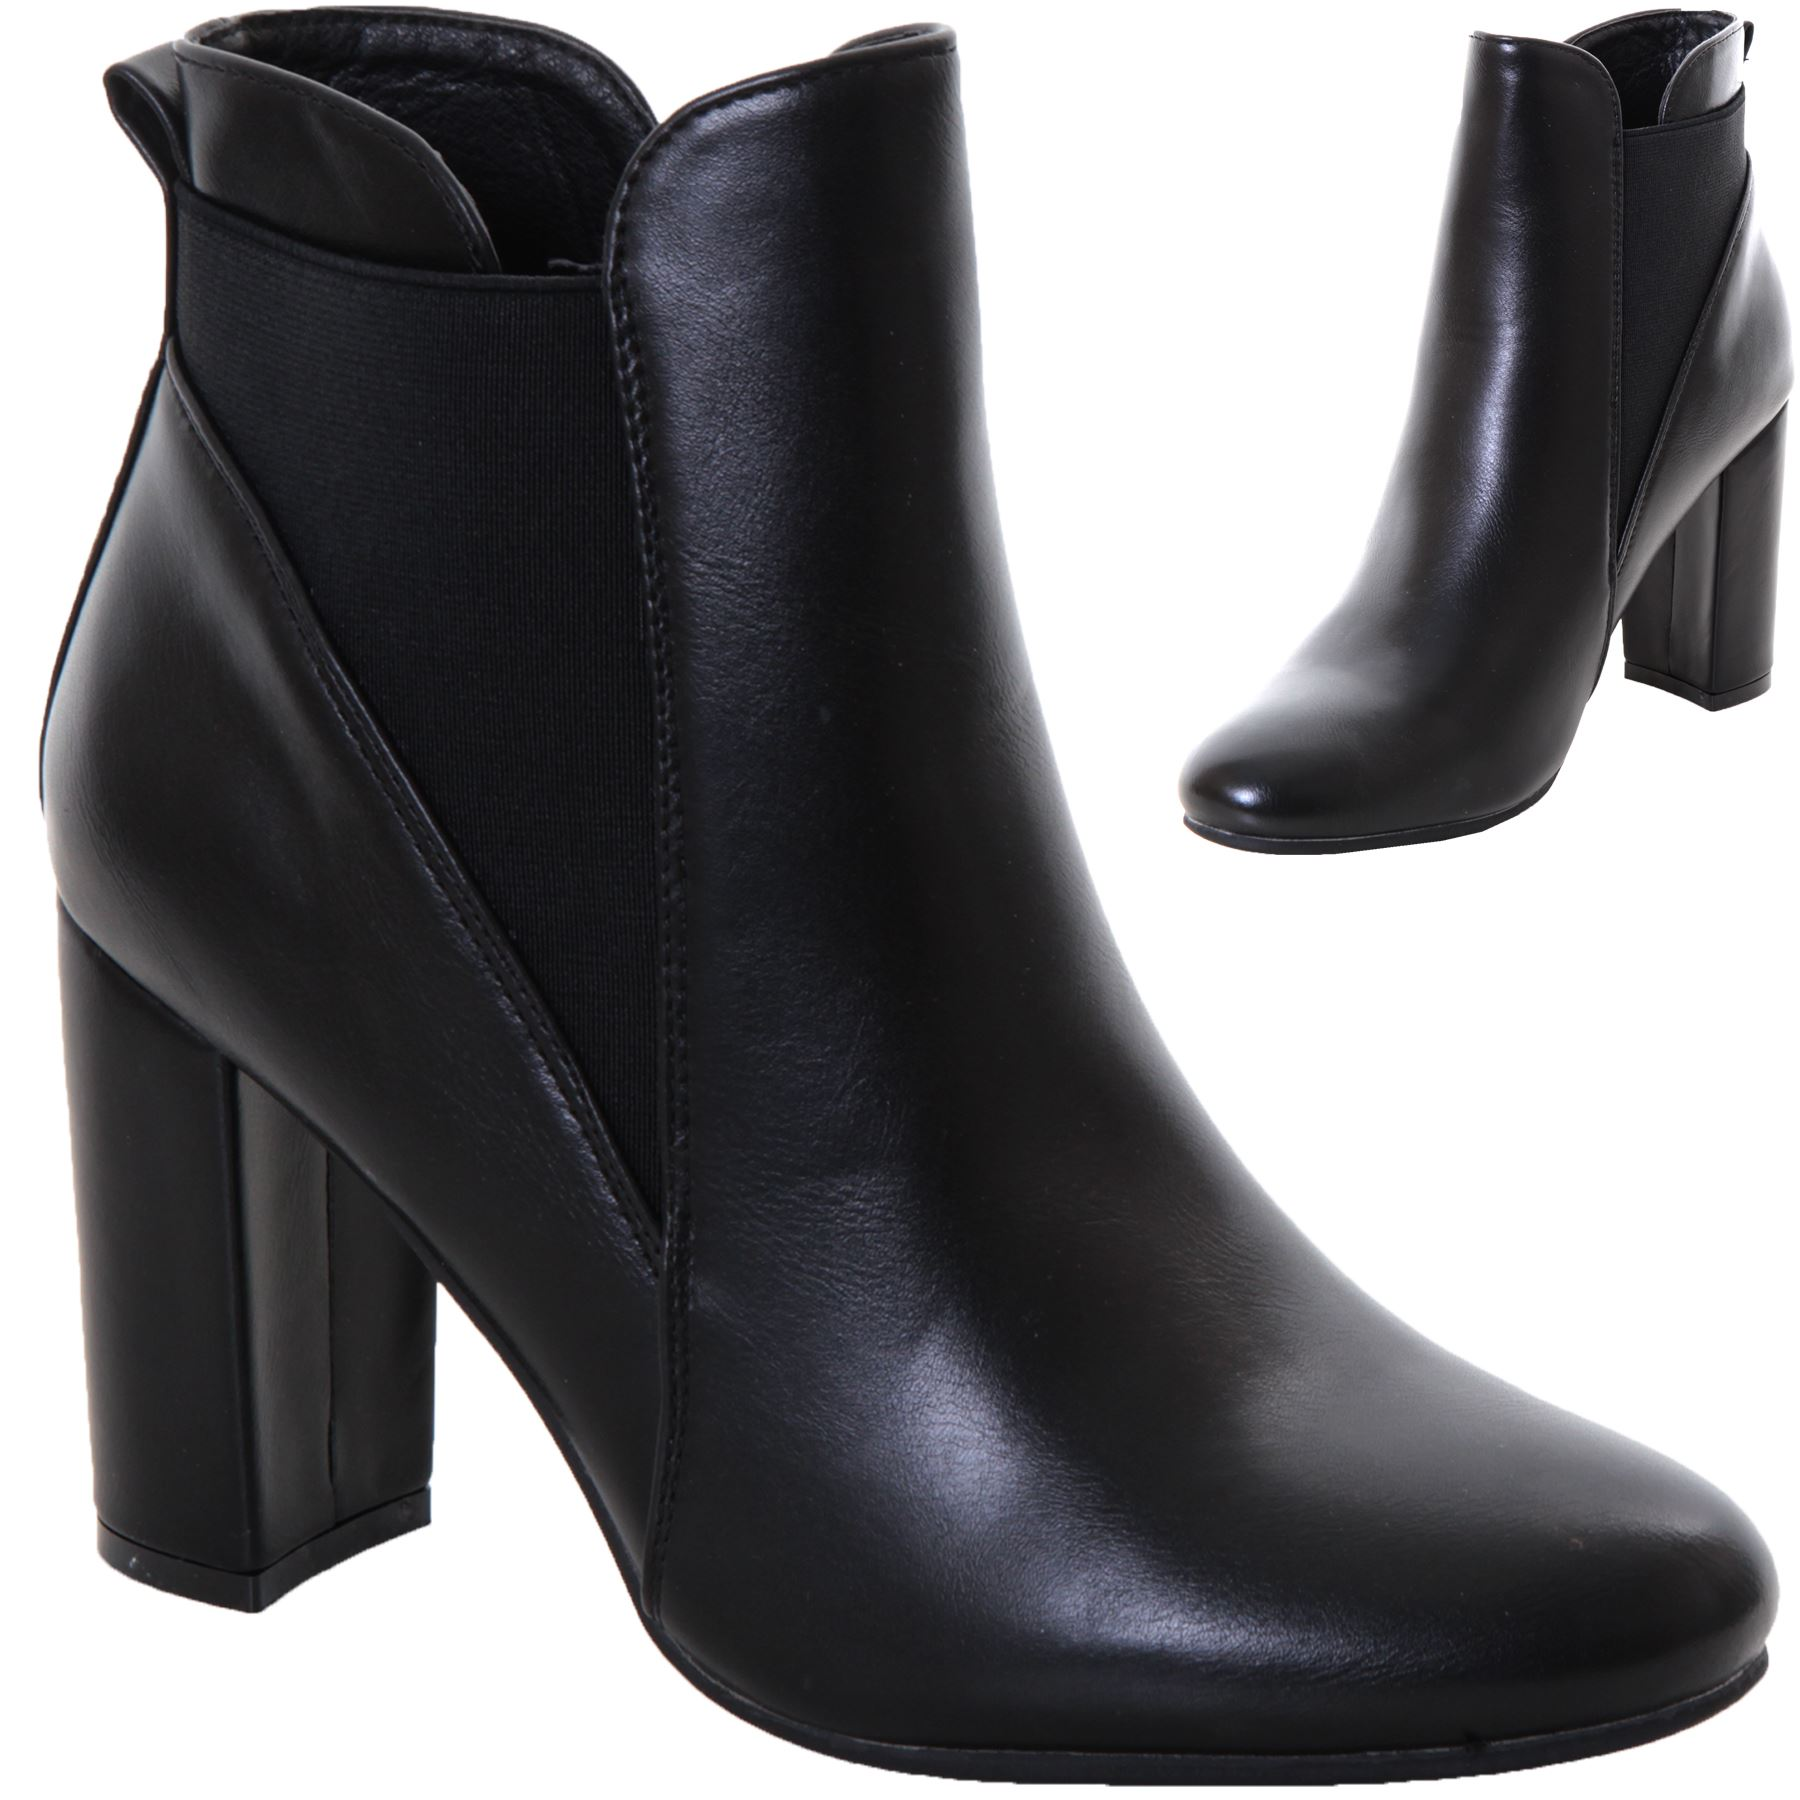 2b6f5895fb309 Details about Ladies Chunky Block High Mid Heel Faux Leather Chelsea Slip  On Ankle Boots